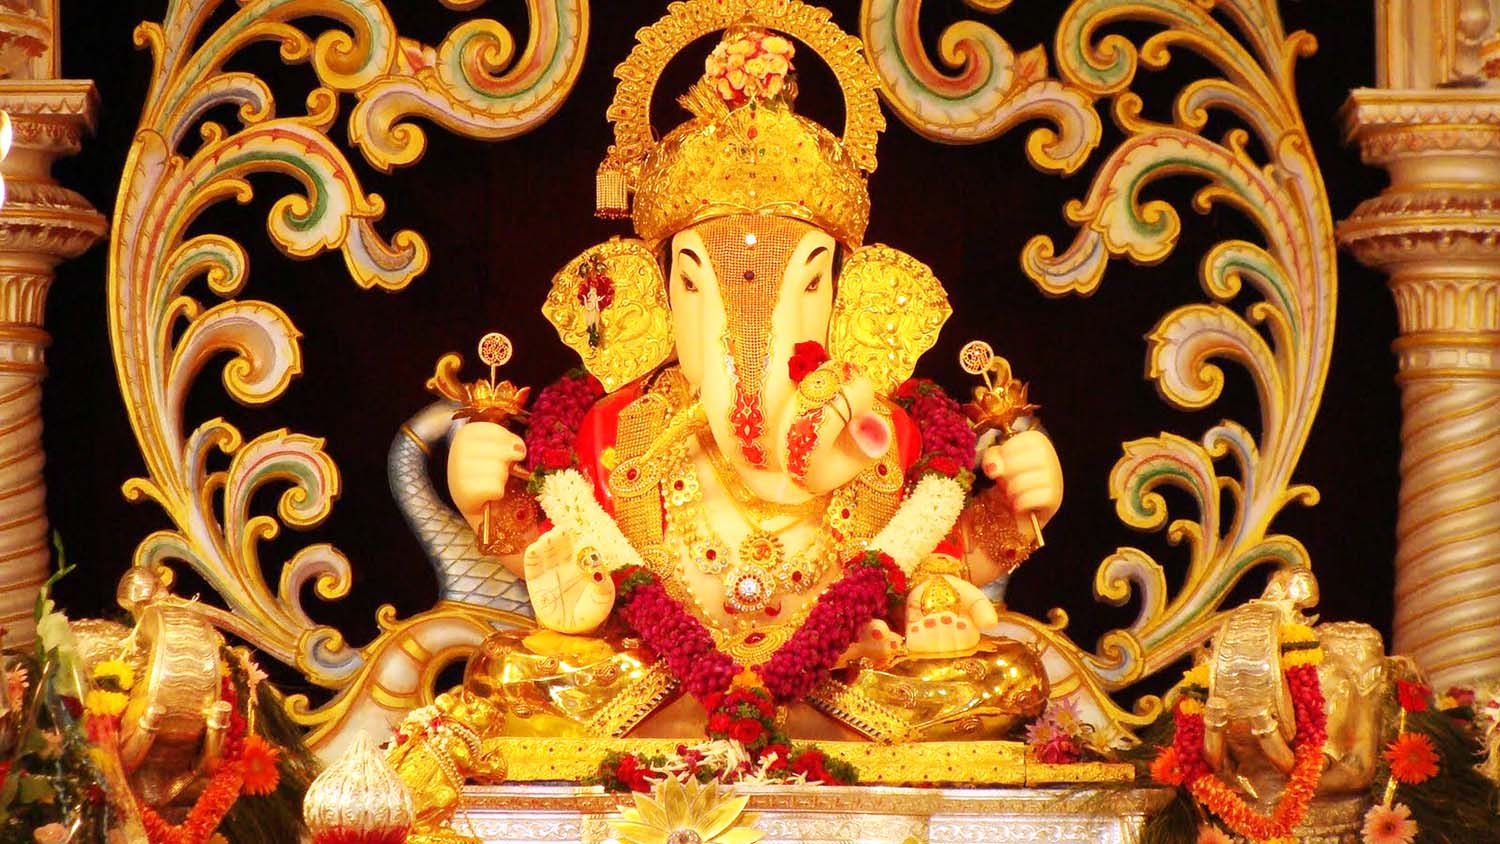 Vinayaka chavithi image to download